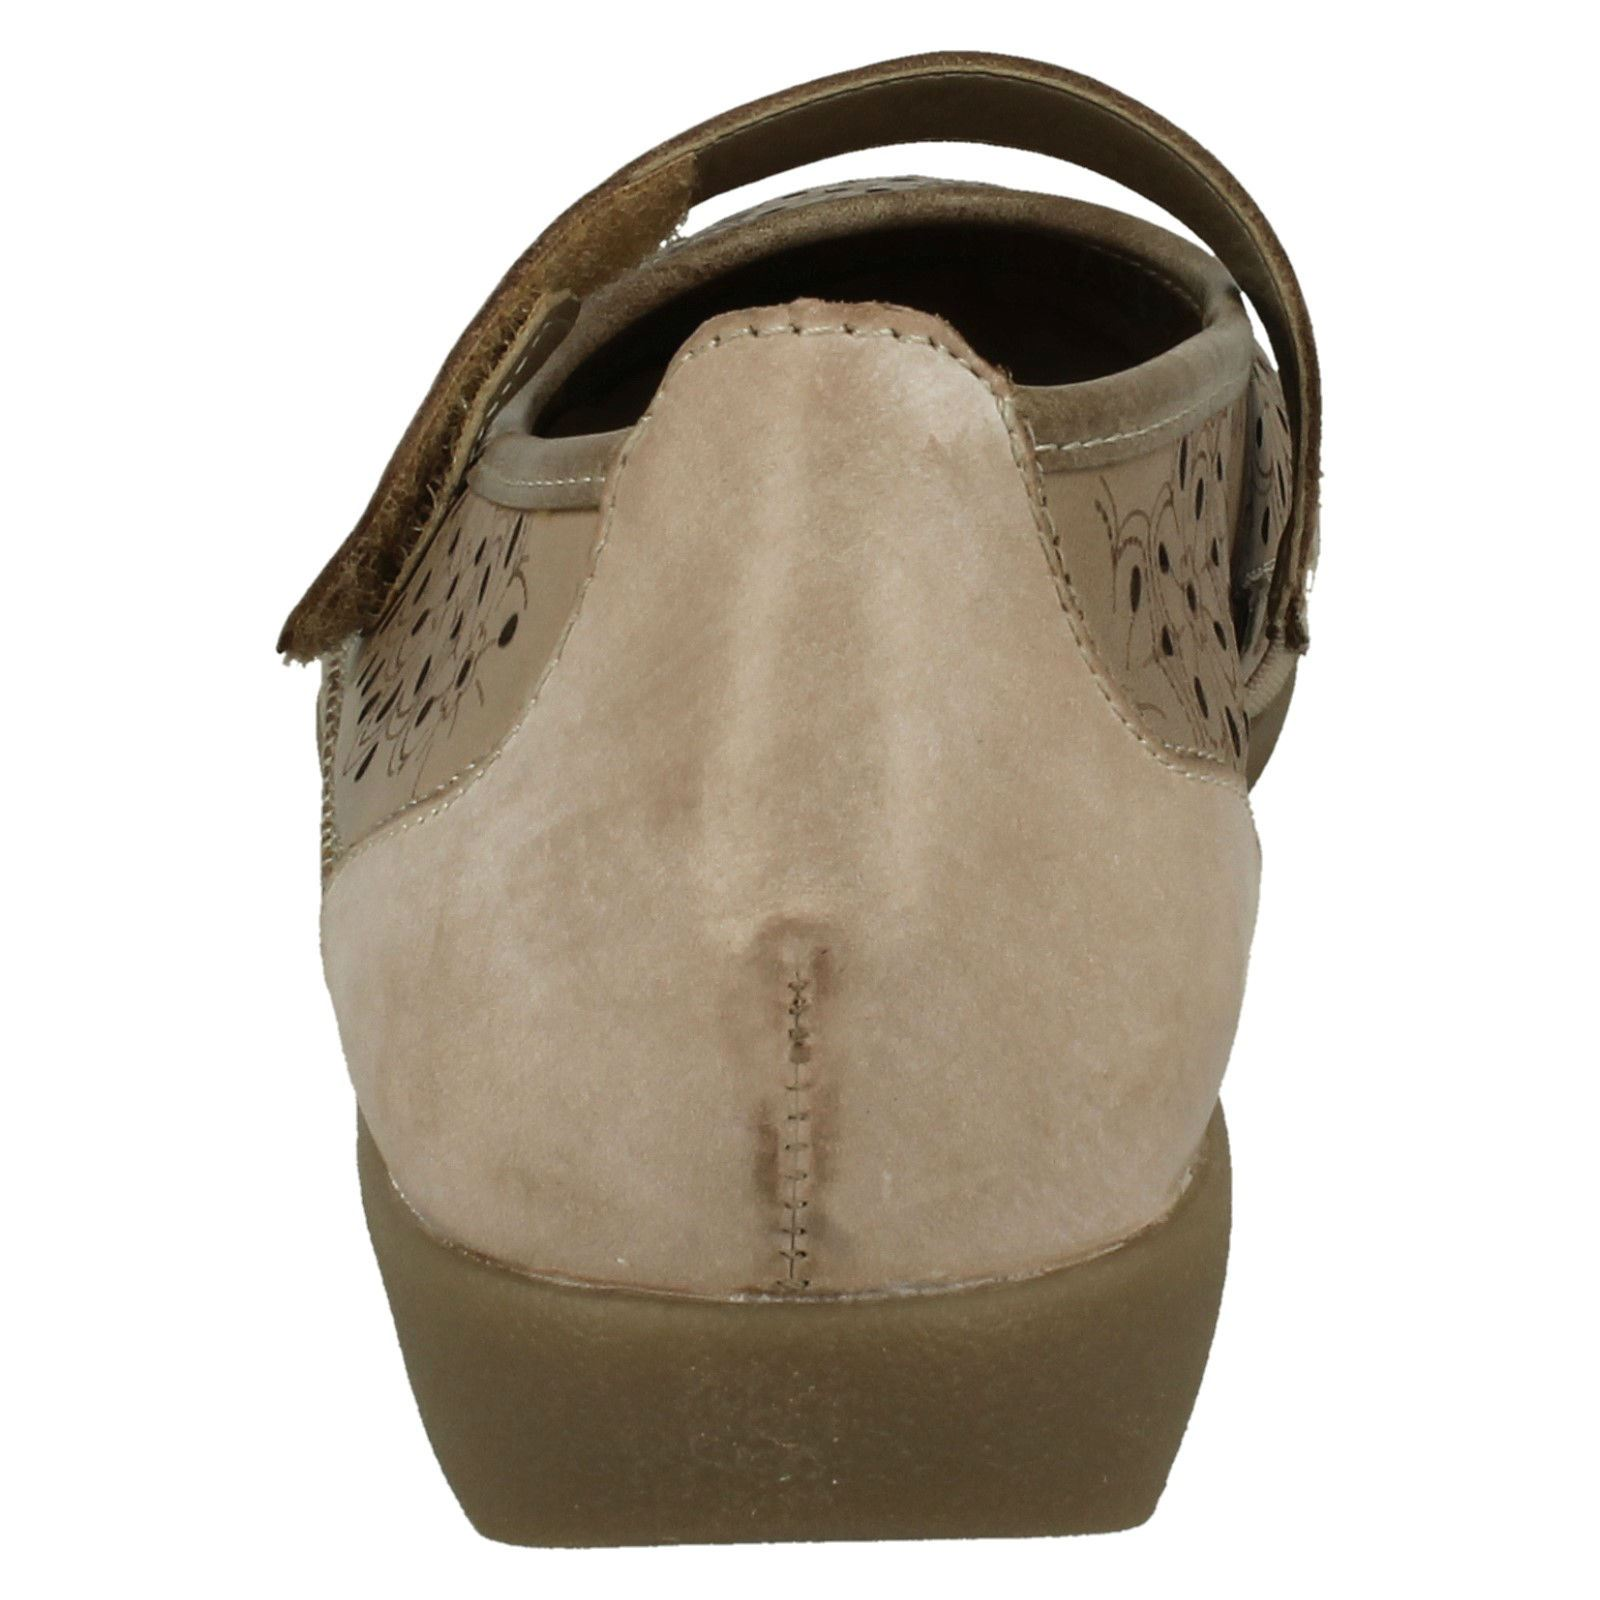 Womens 'D1906' Remonte Flat Casual Shoes 'D1906' Womens 617877